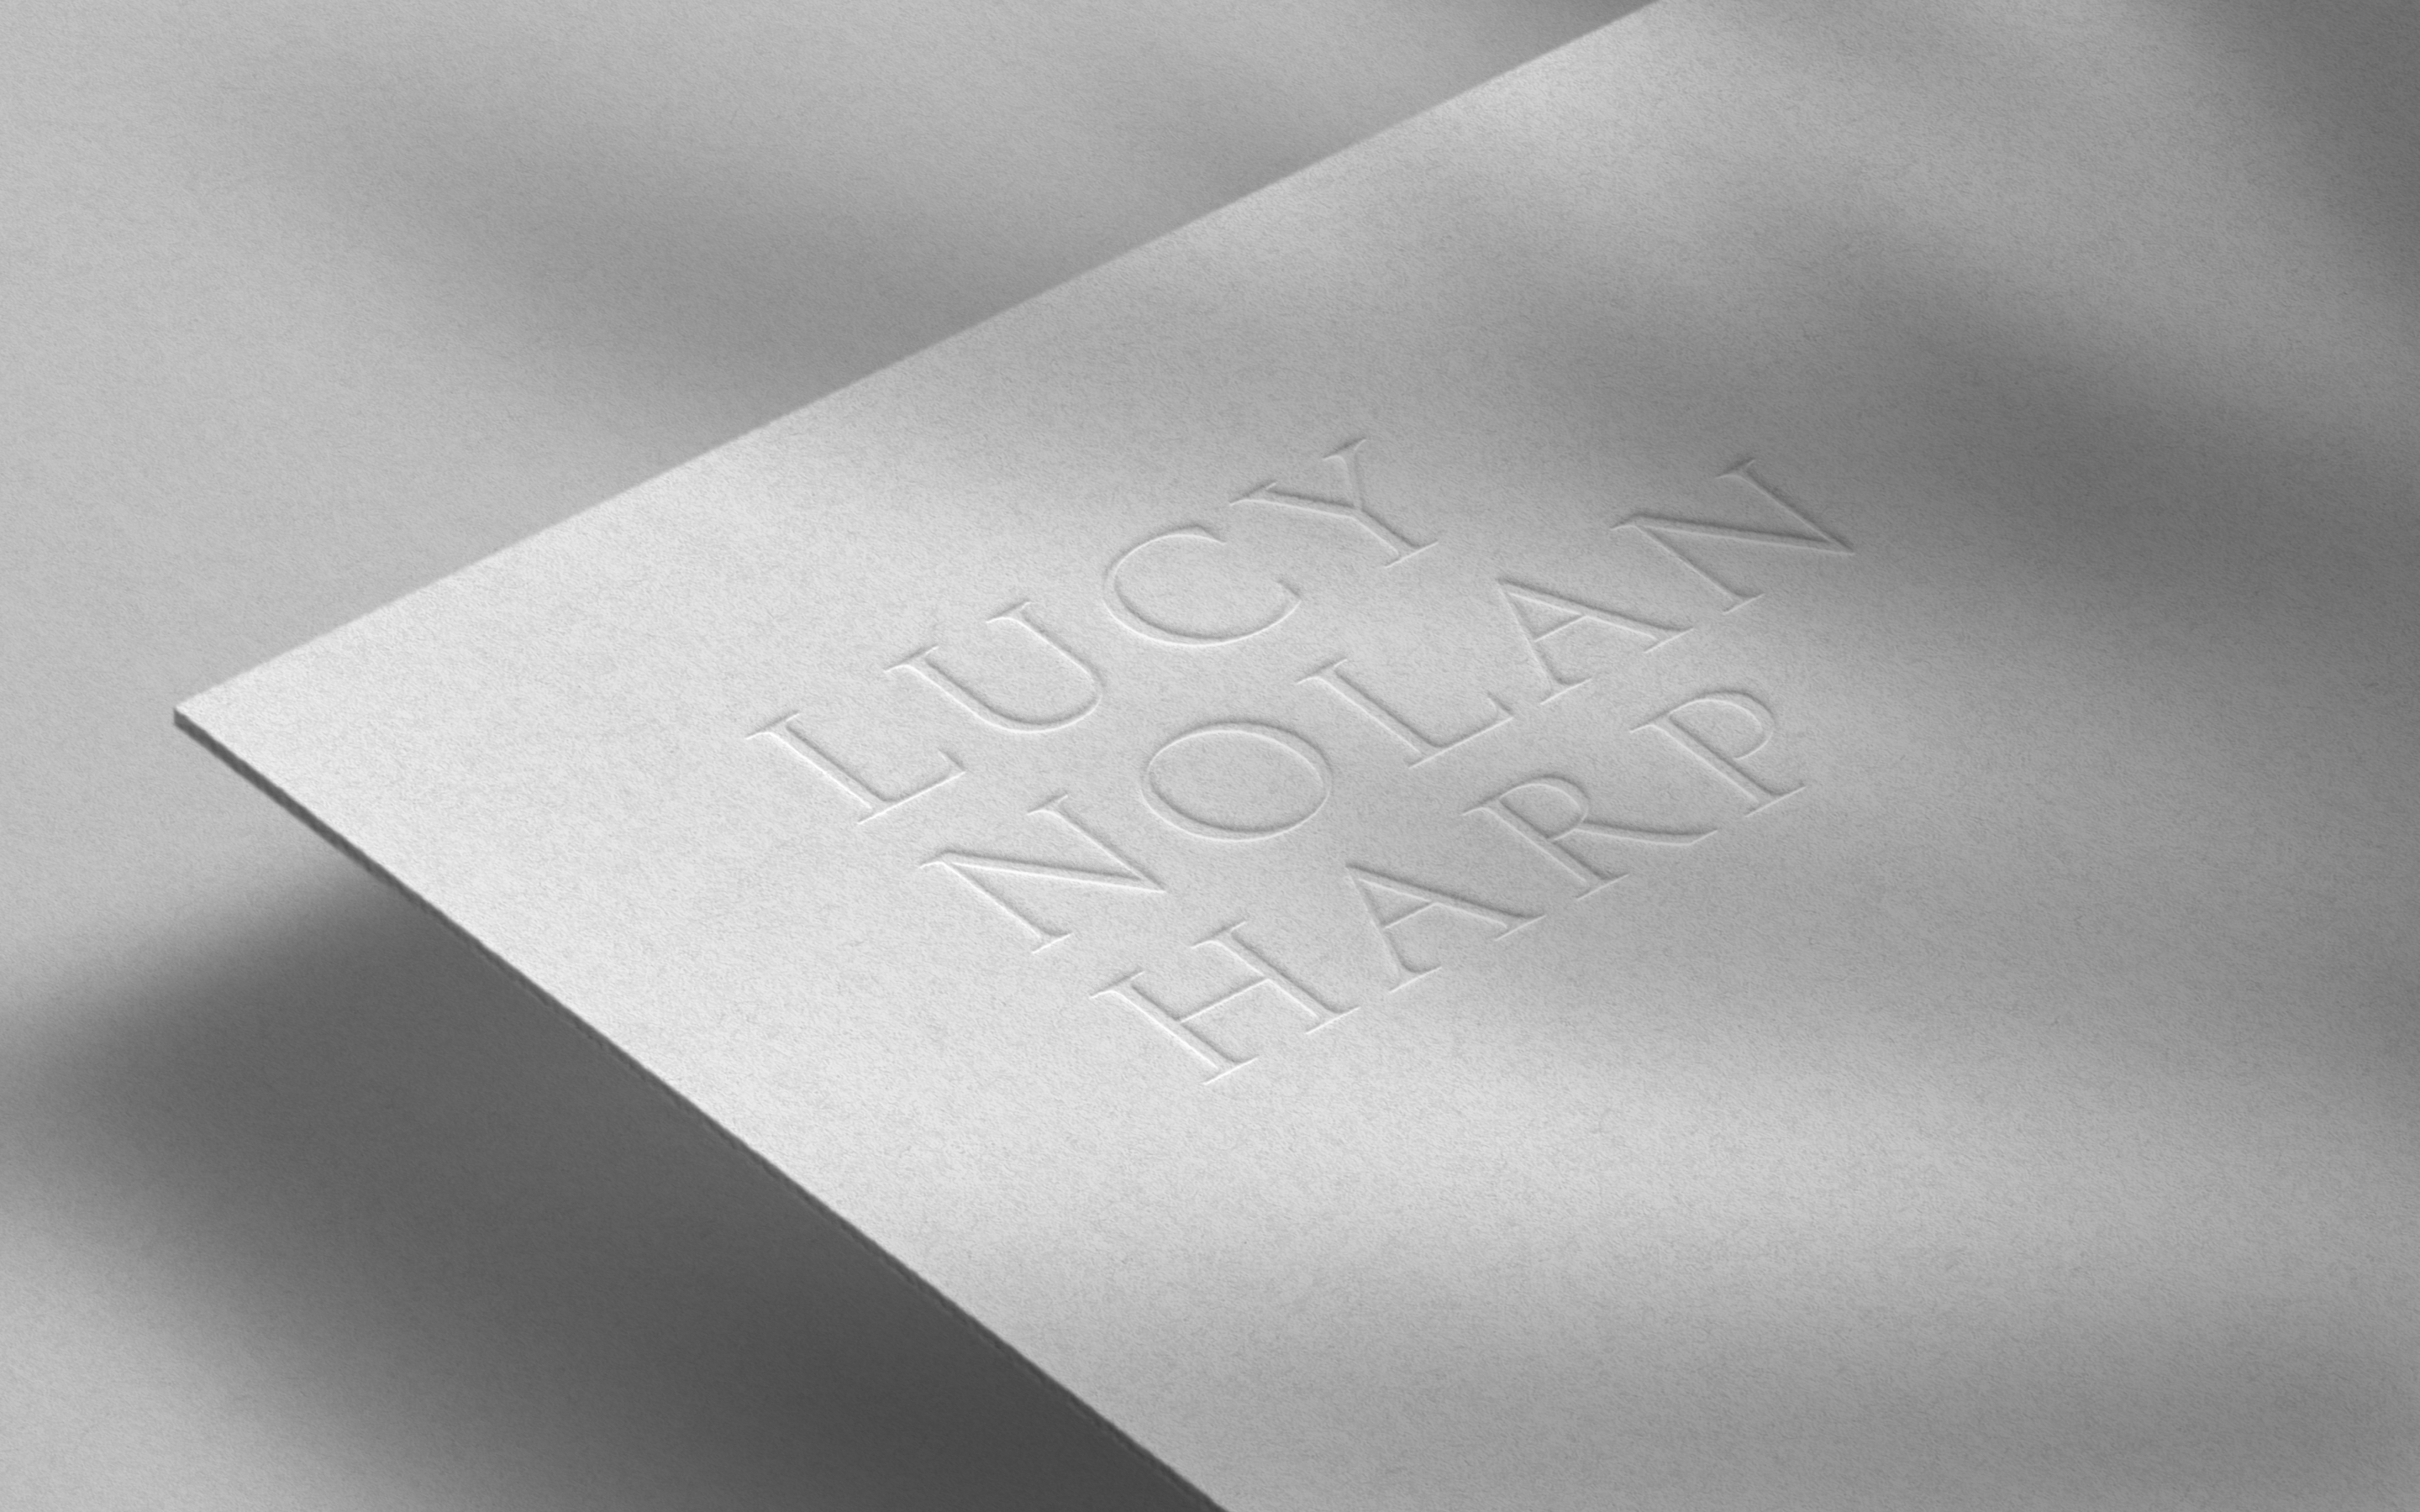 Embossed logo design on textured card for classical musician and harpist, Lucy Nolan